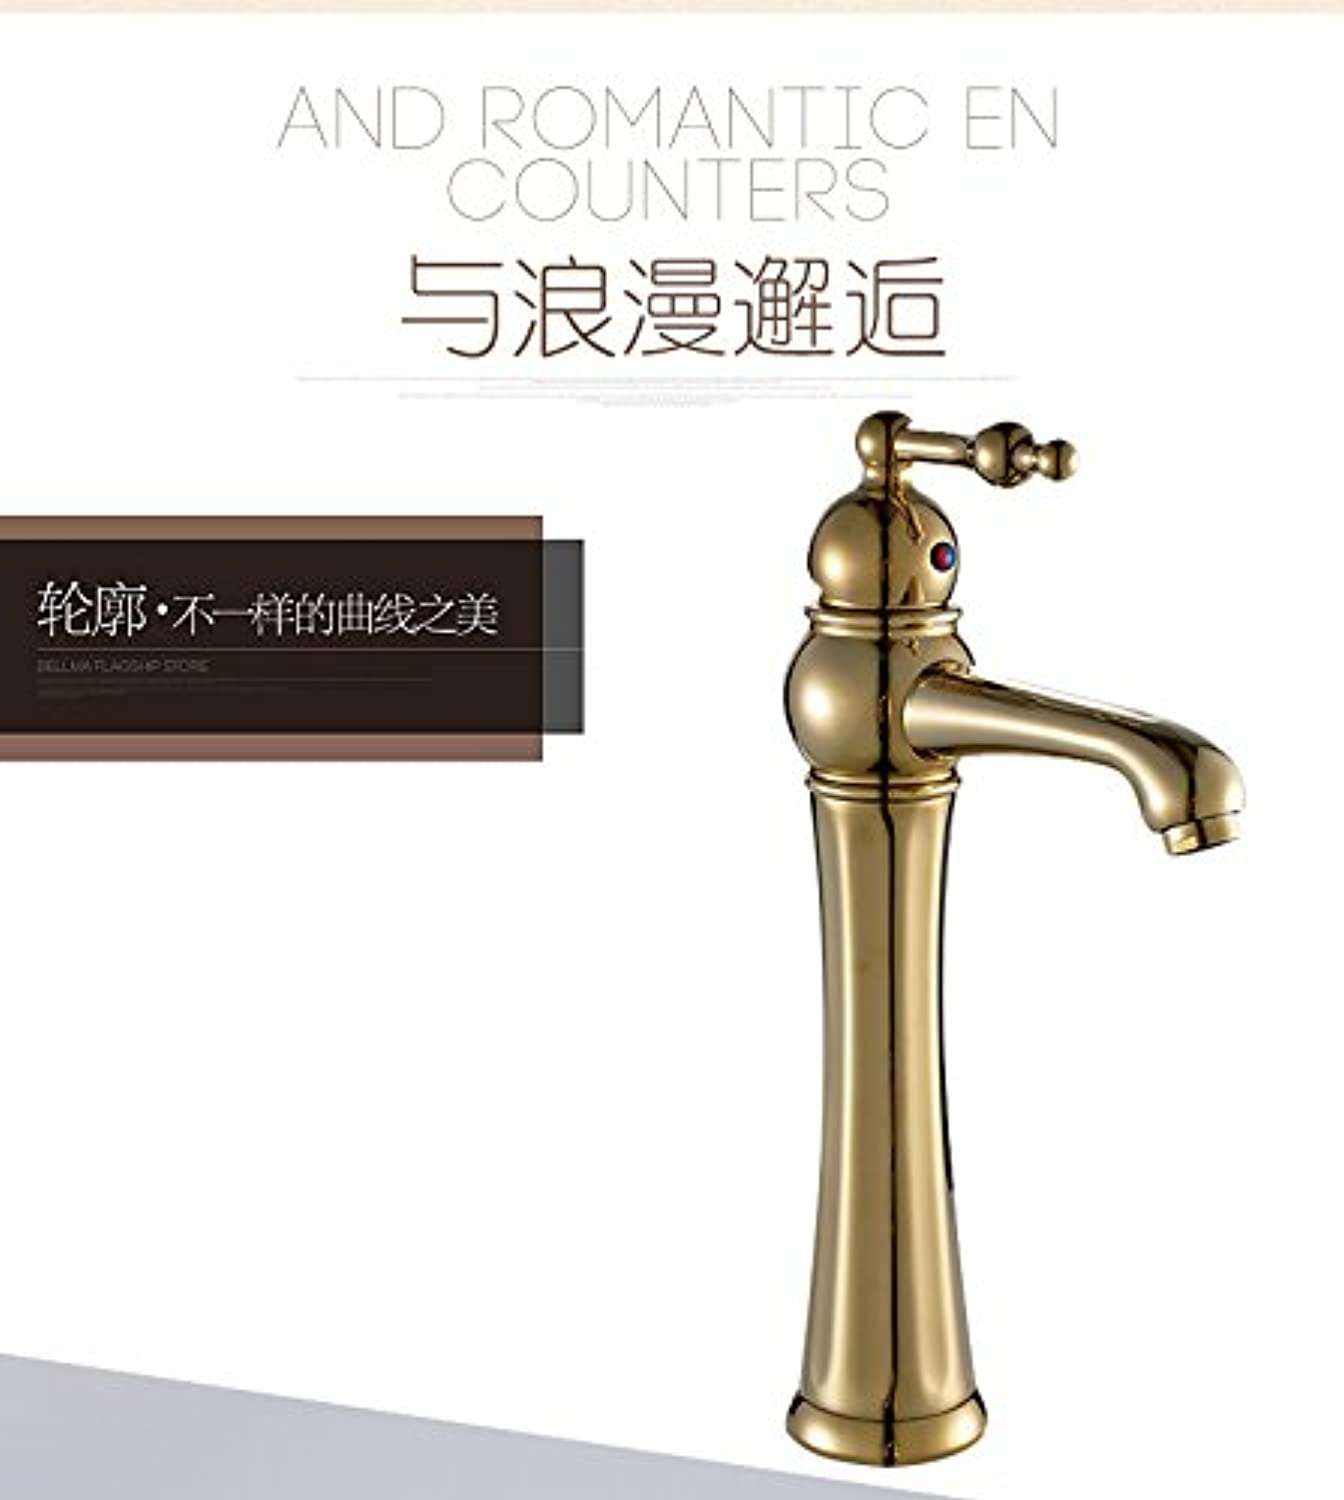 U-Enjoy Deck Mounted gold Top Quality Bathroom Mixer Tap with Single Handle Classic Bathroom Sink Faucet for golden Faucet (Free Shipping)